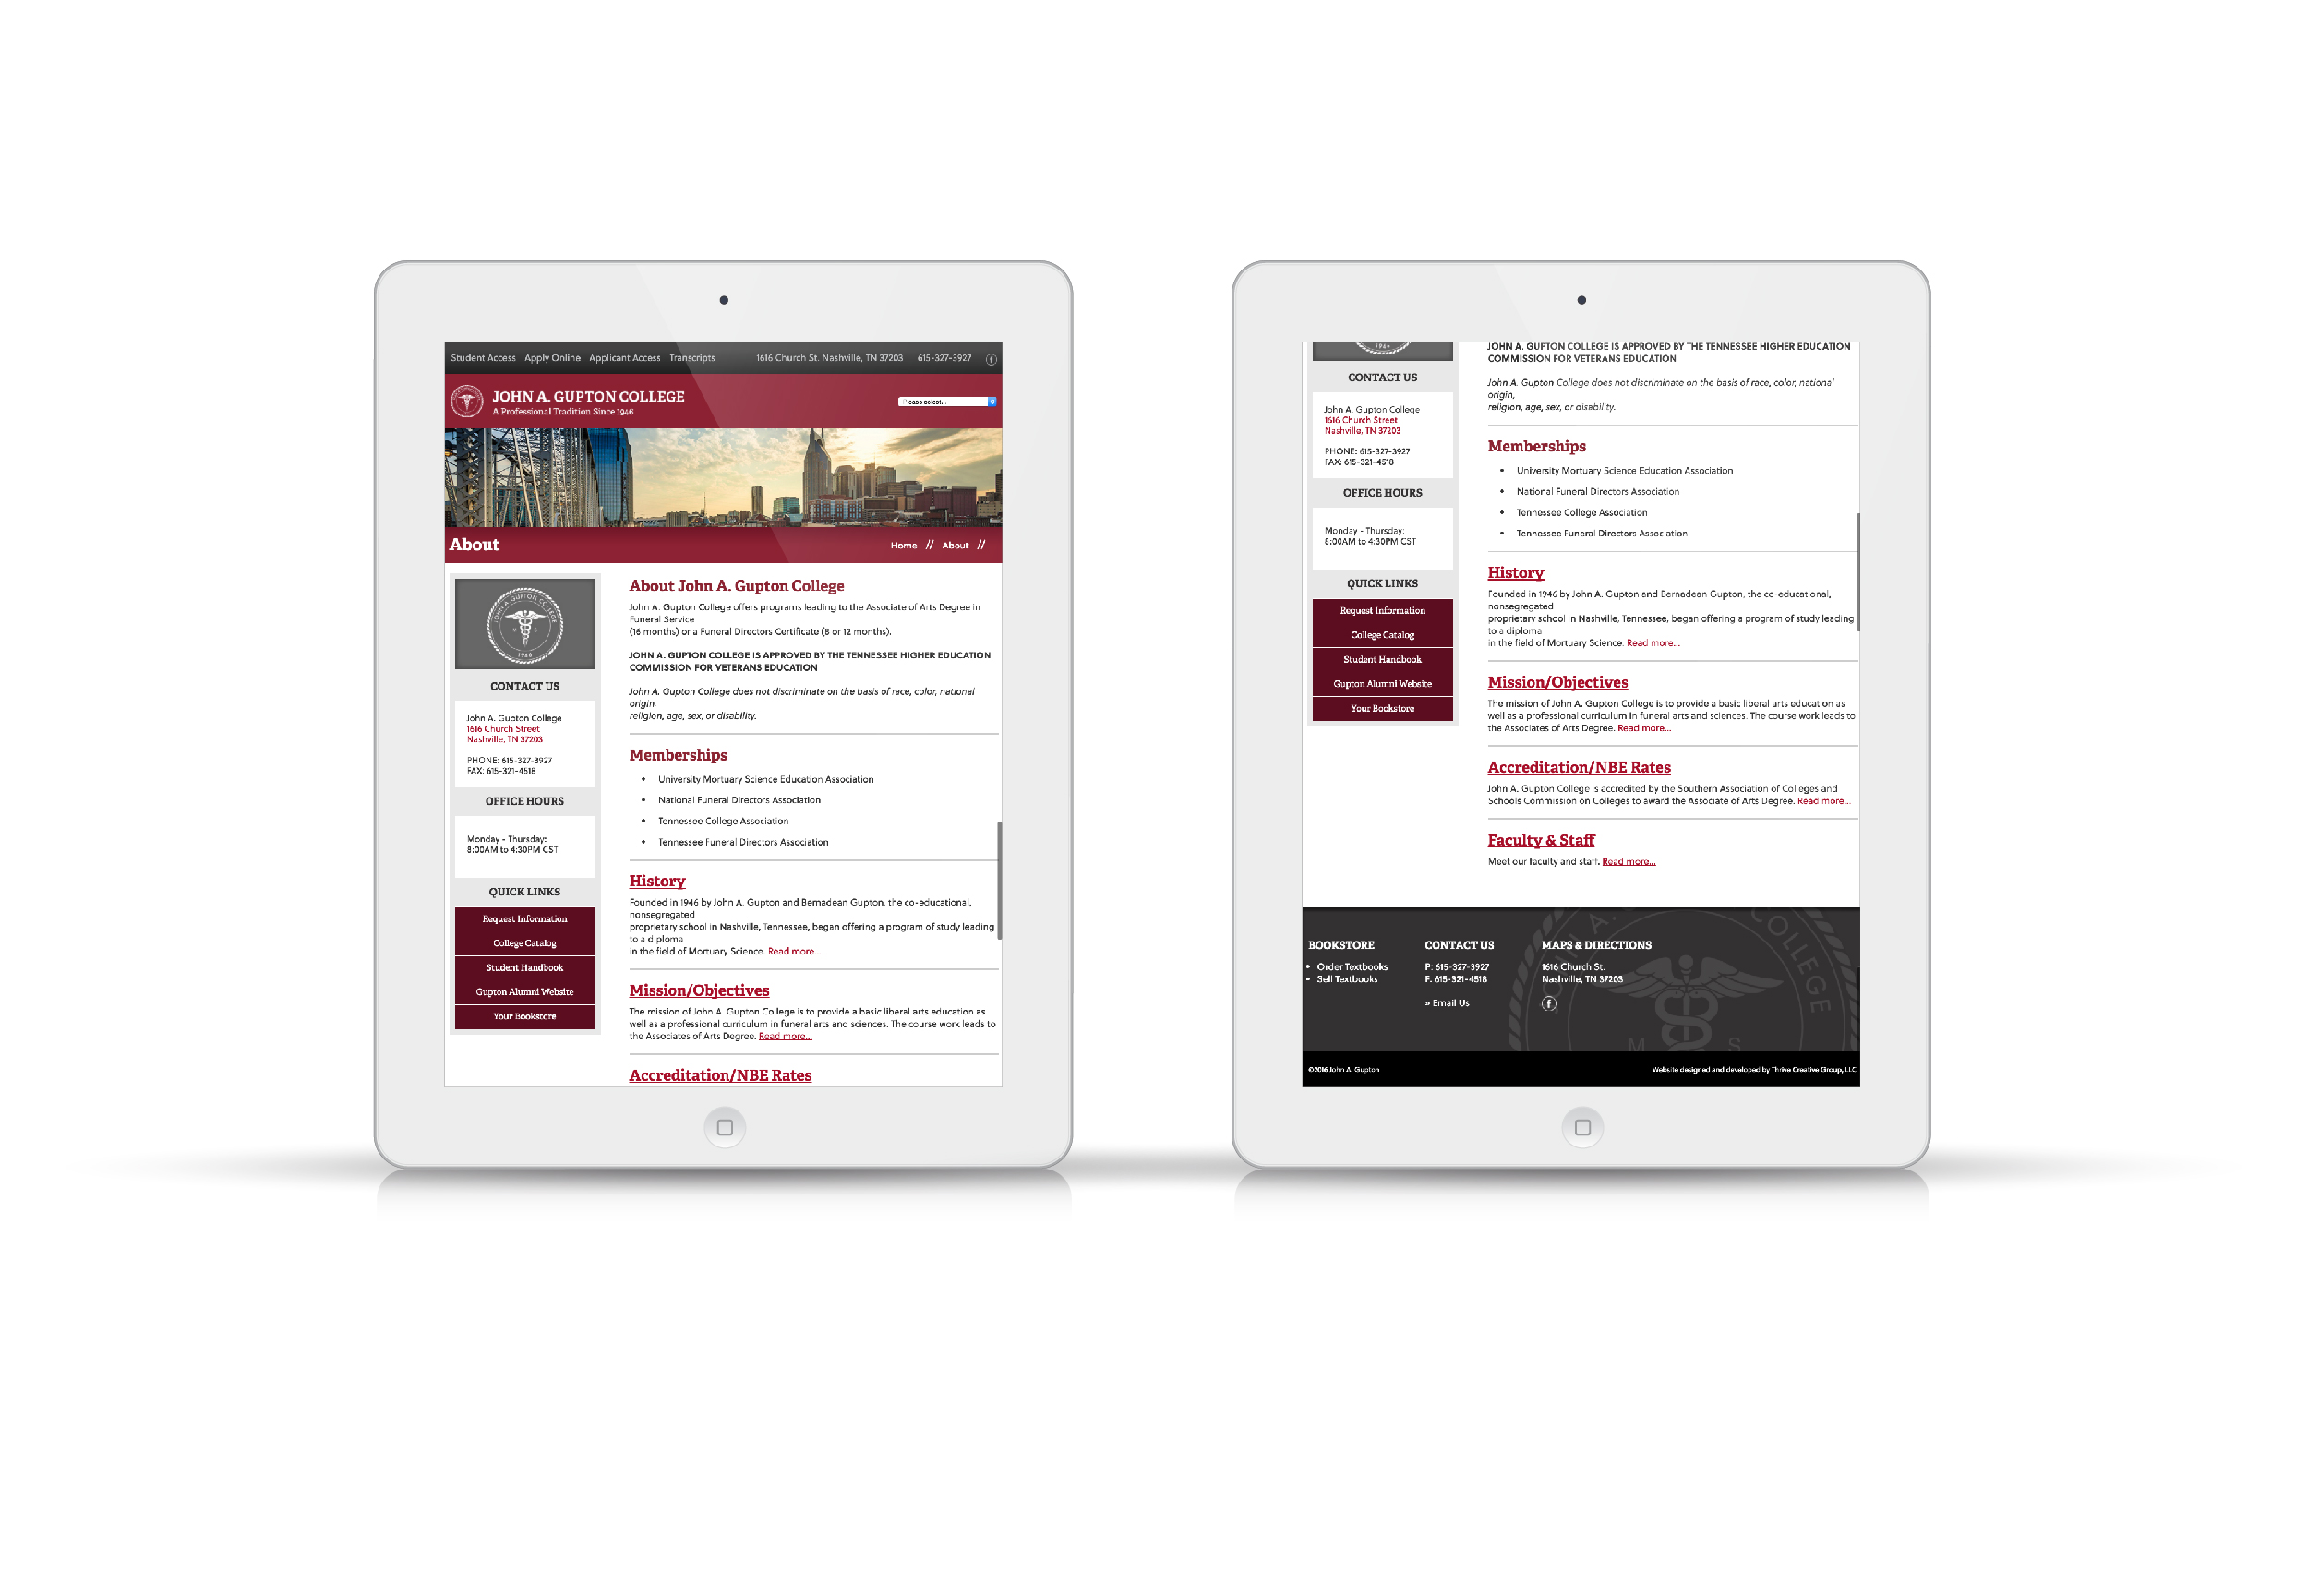 John A. Gupton College Website On Tablet Screen